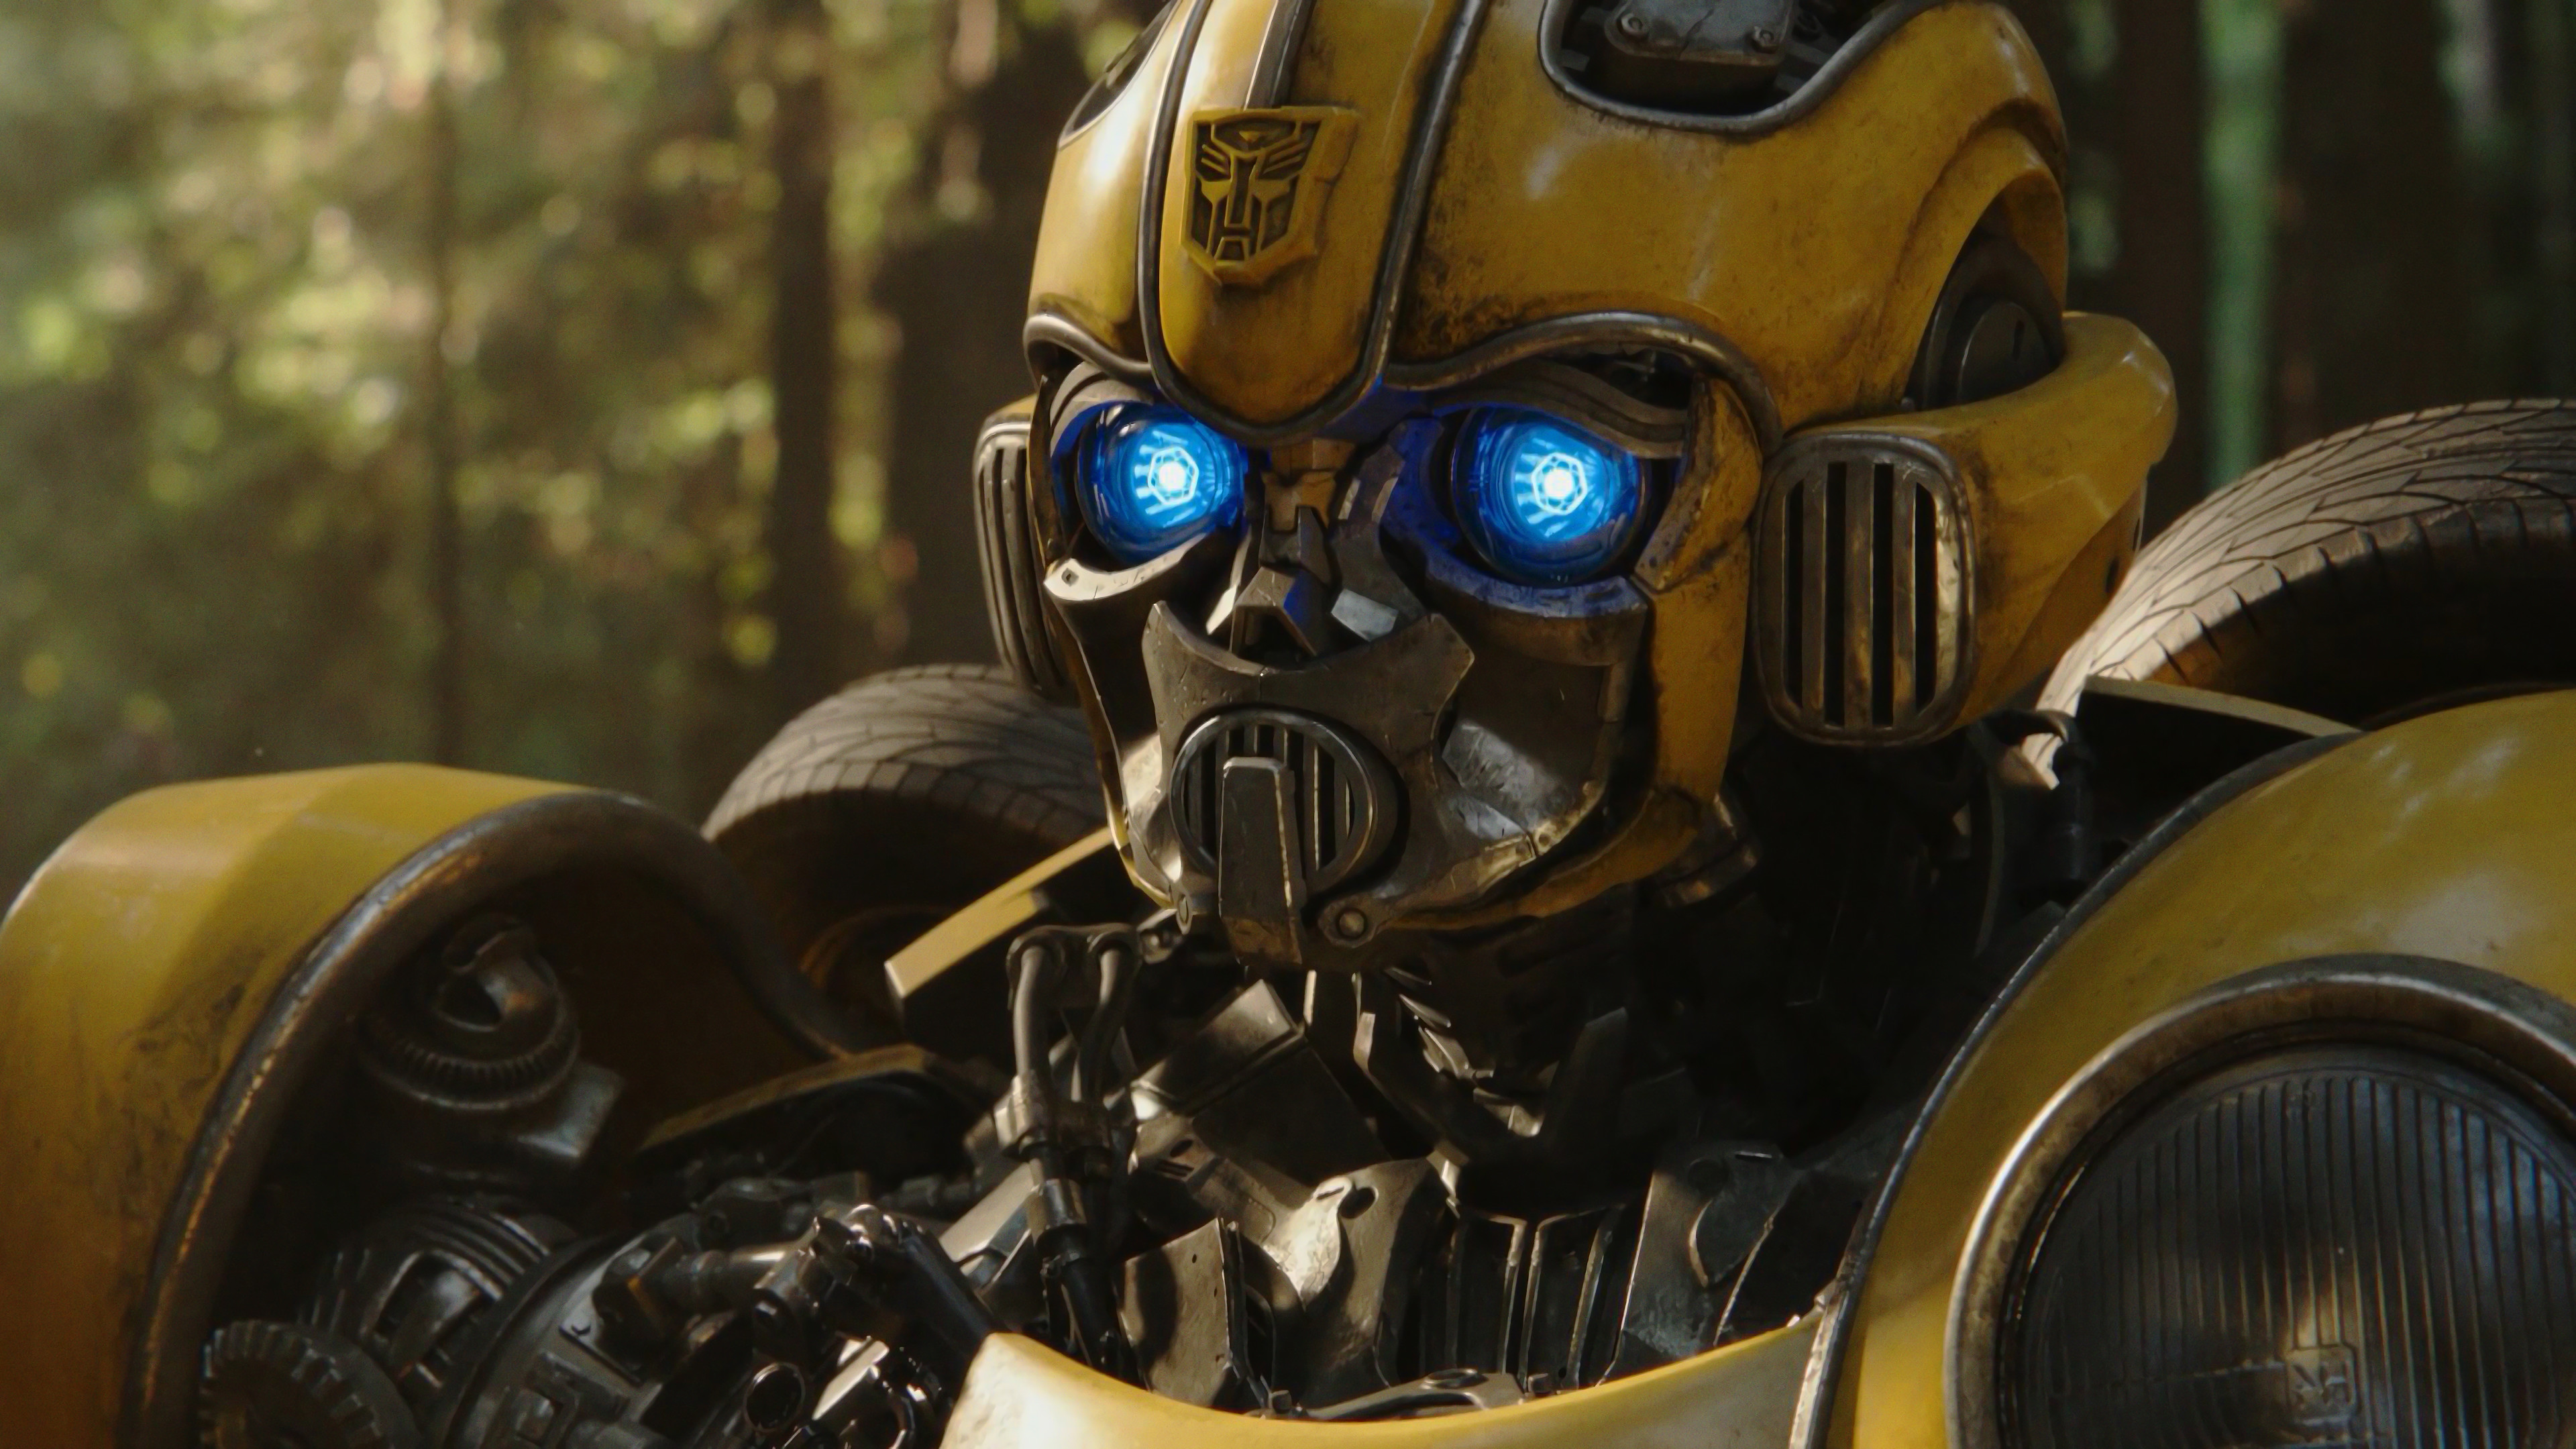 bumblebee movie 2018 4k wallpaper 1545590380 - Bumblebee Movie 2018 4K Wallpaper - Bumblebee (Movie 2018), Bumblebee